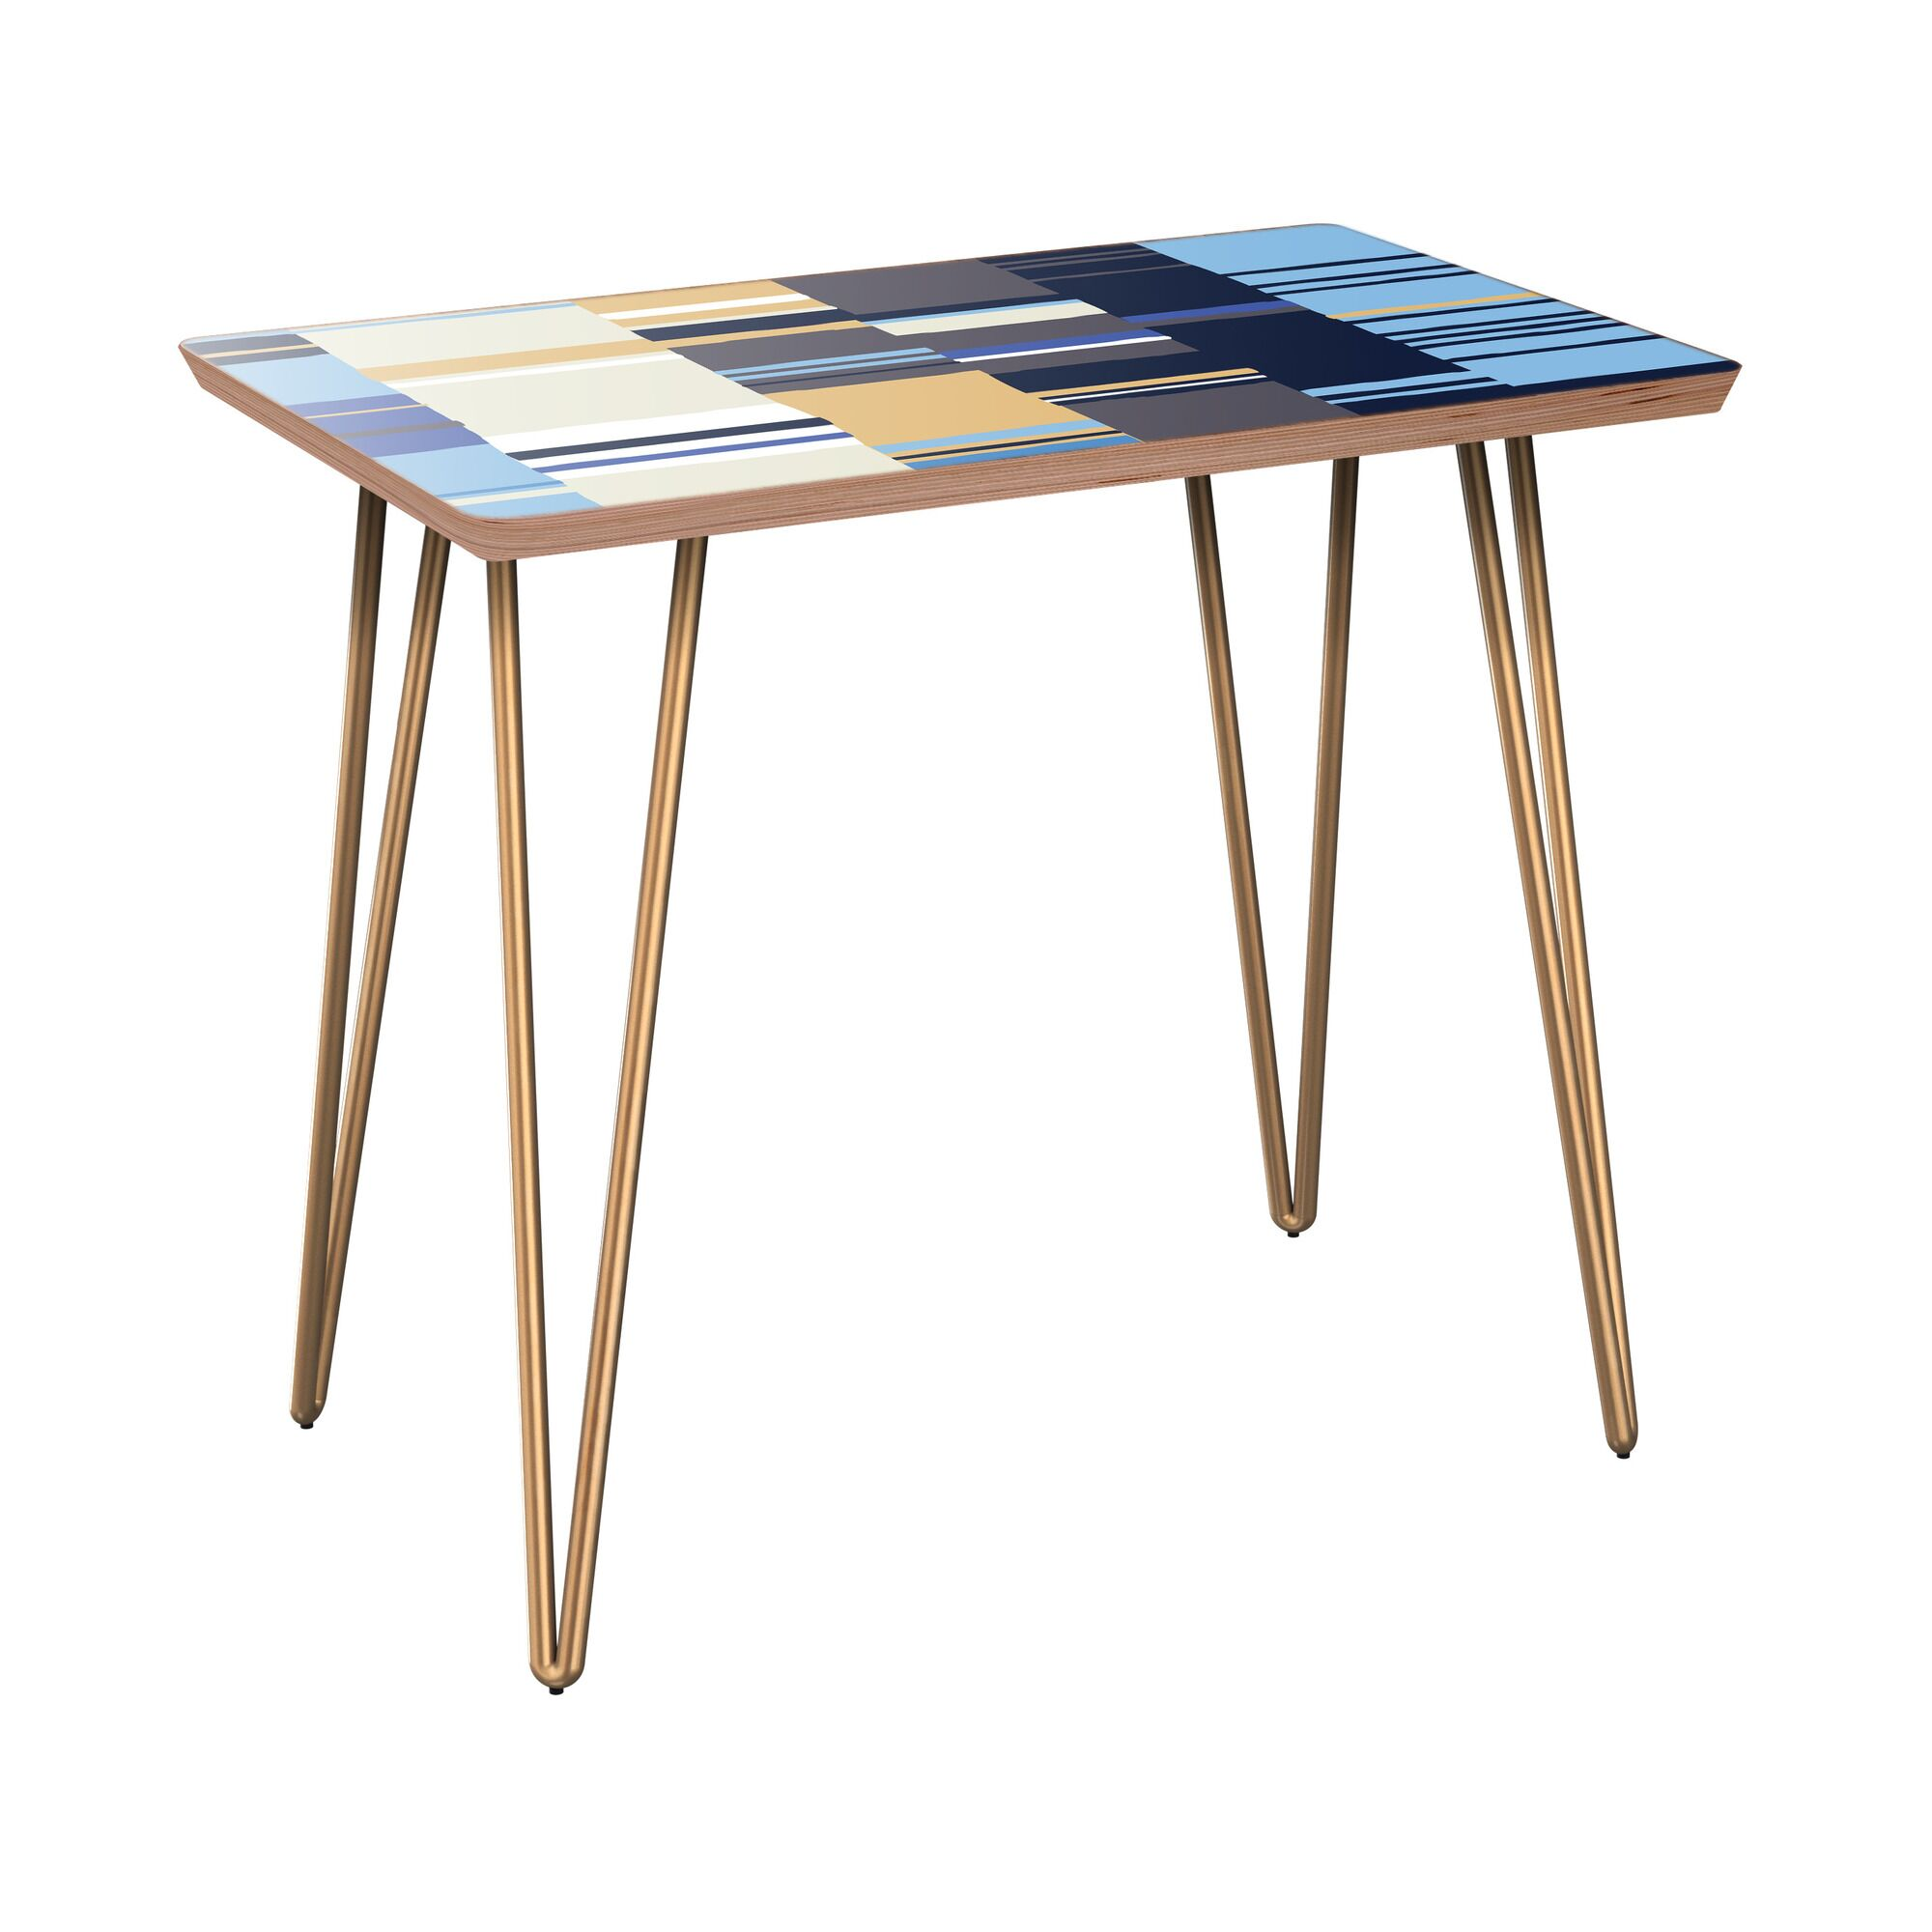 Kilraghts End Table Table Base Color: Brass, Table Top Color: Walnut